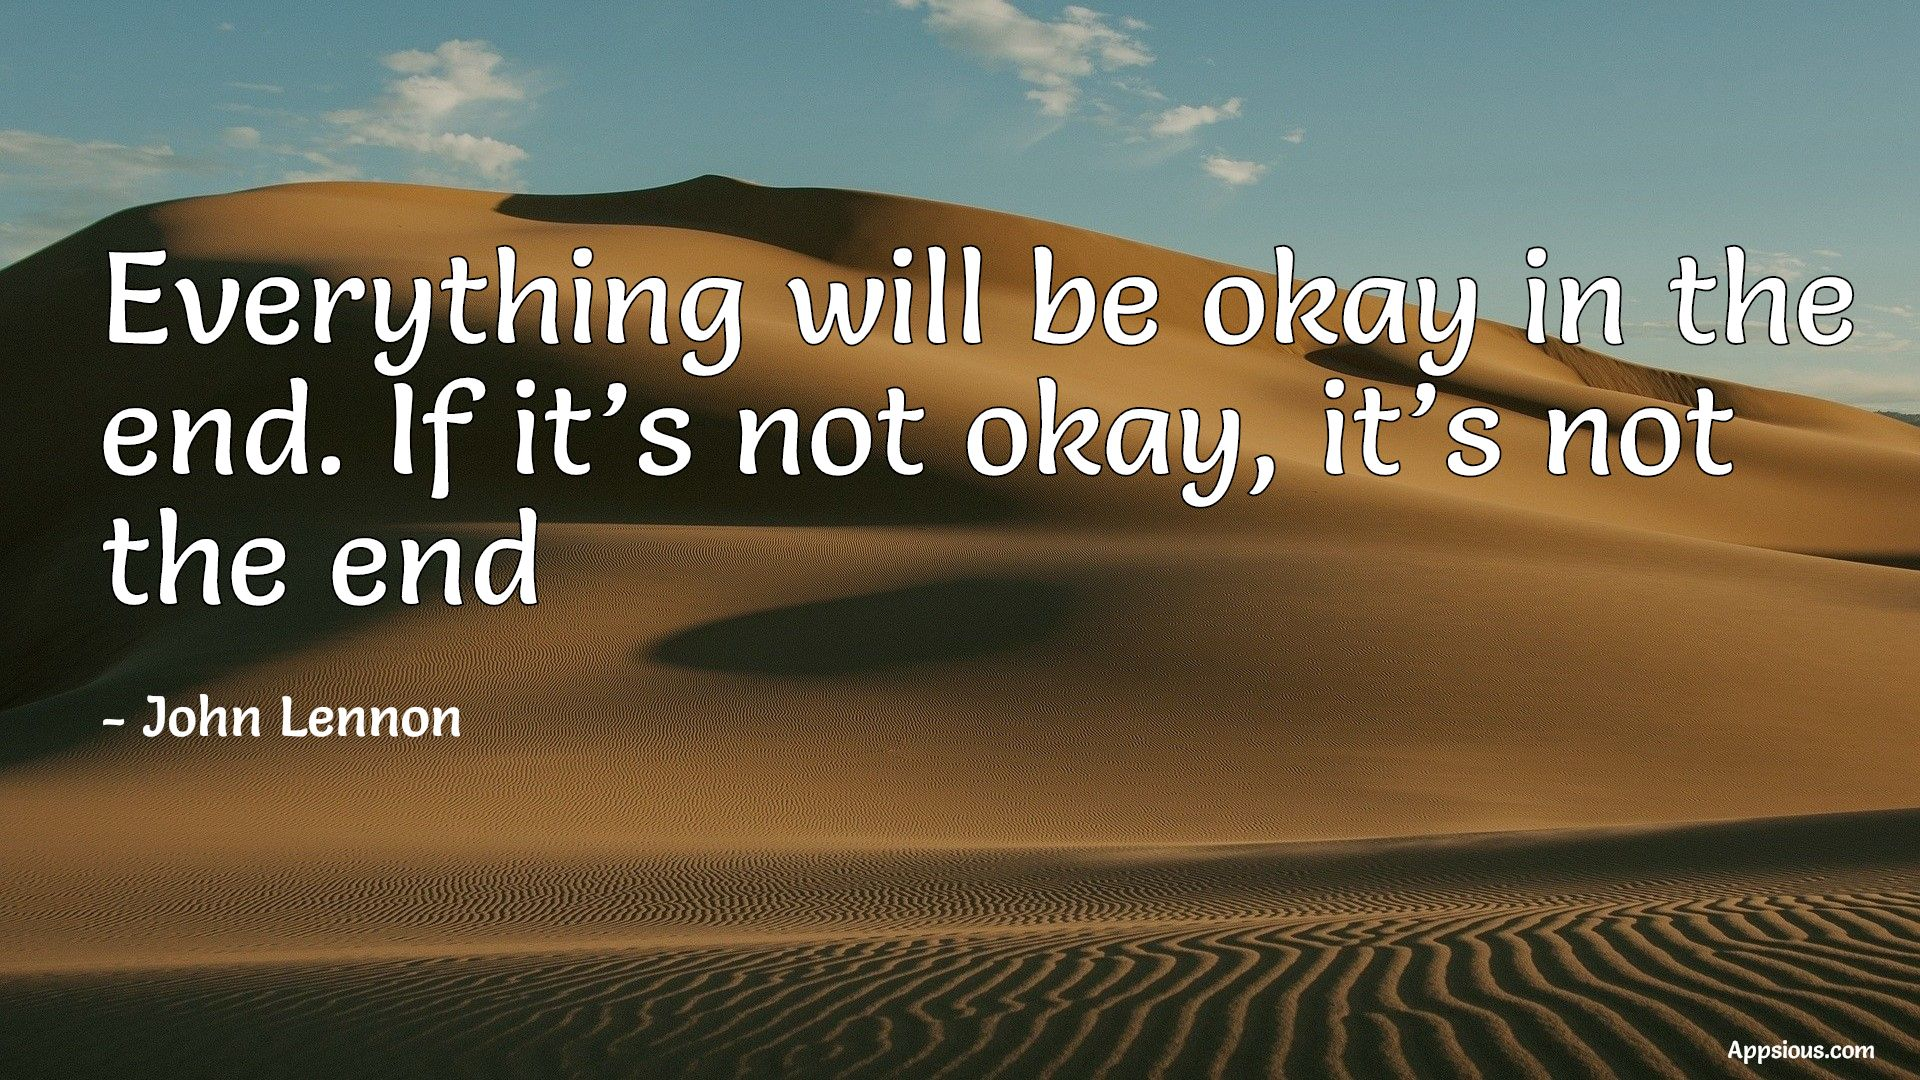 Everything will be okay in the end. If it's not okay, it's not the end